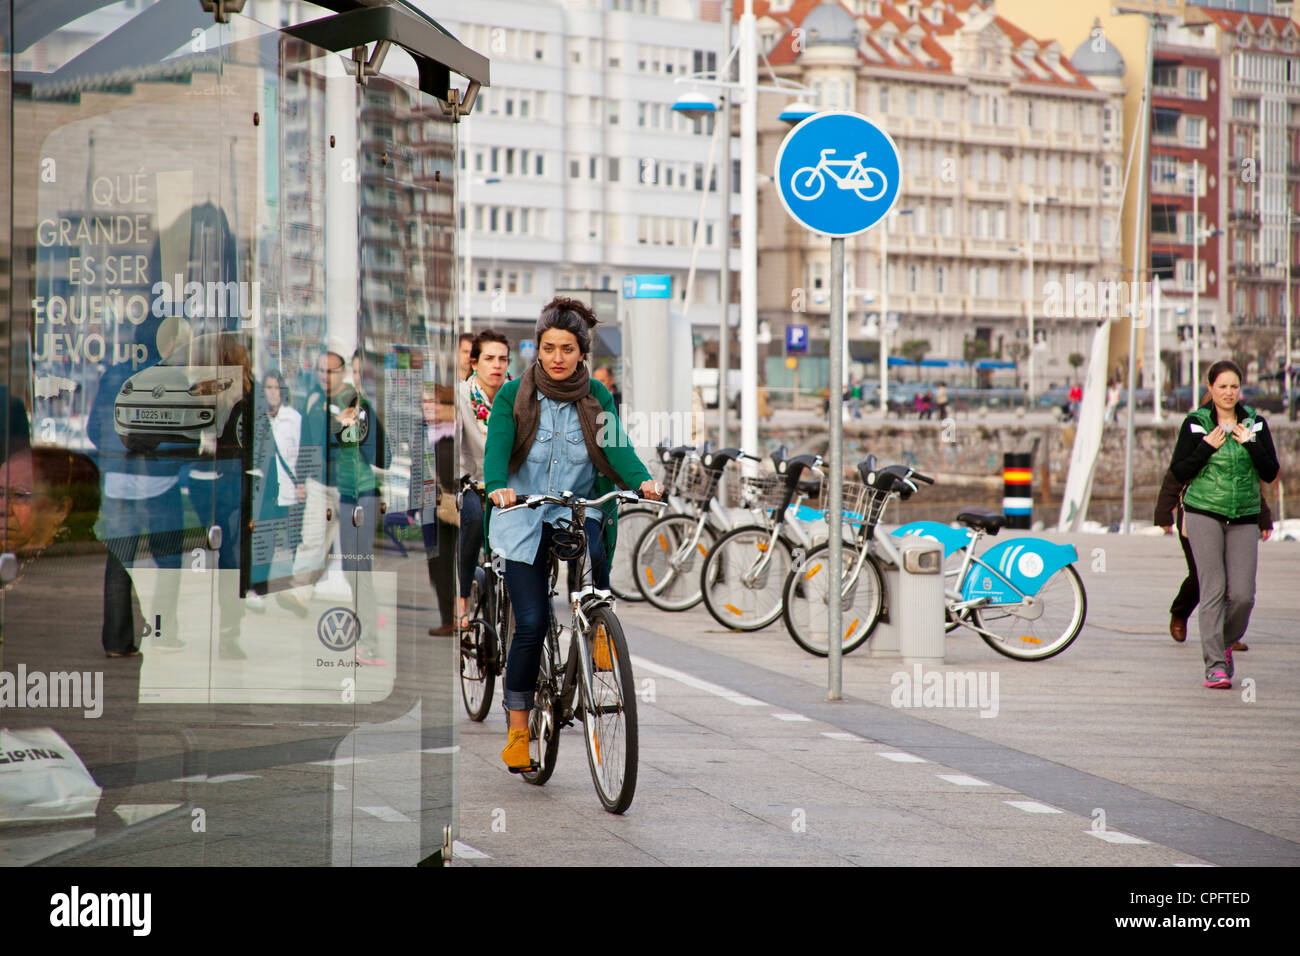 Bike lane Santander Cantabria Spain - Stock Image